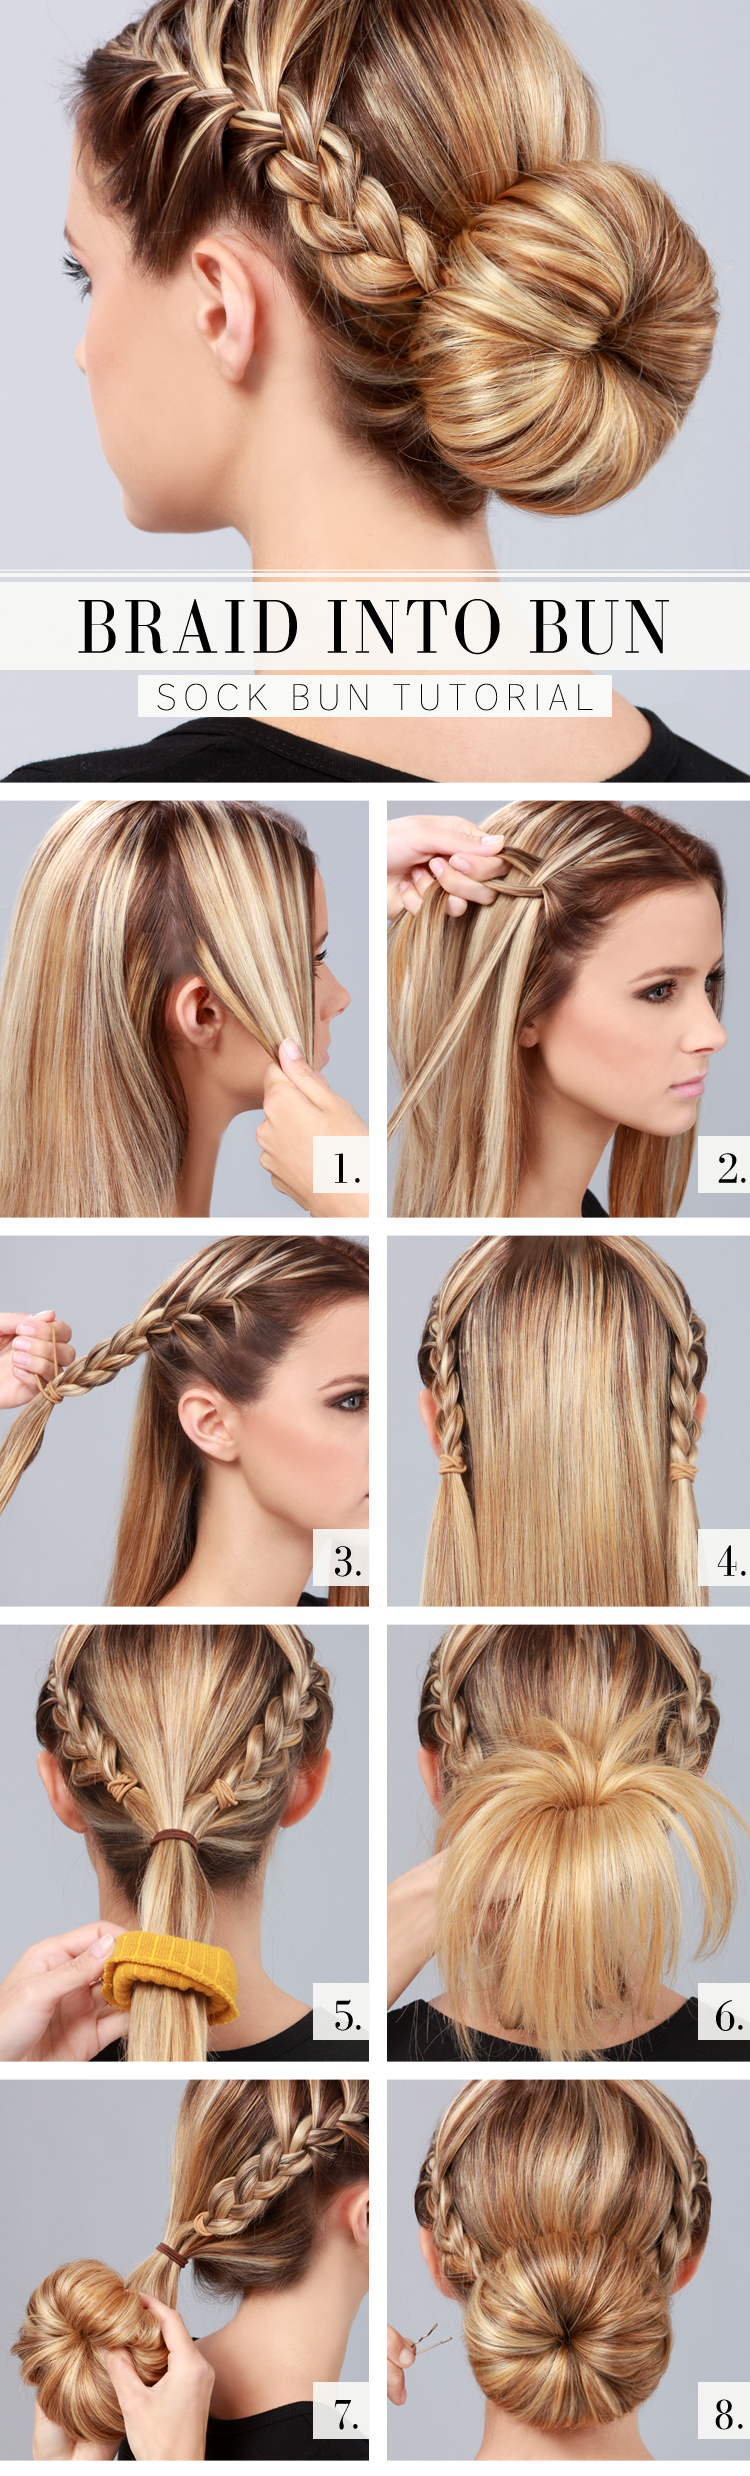 Cute Braids Tumblr Step By Step – Shopping Guide. We Are Number